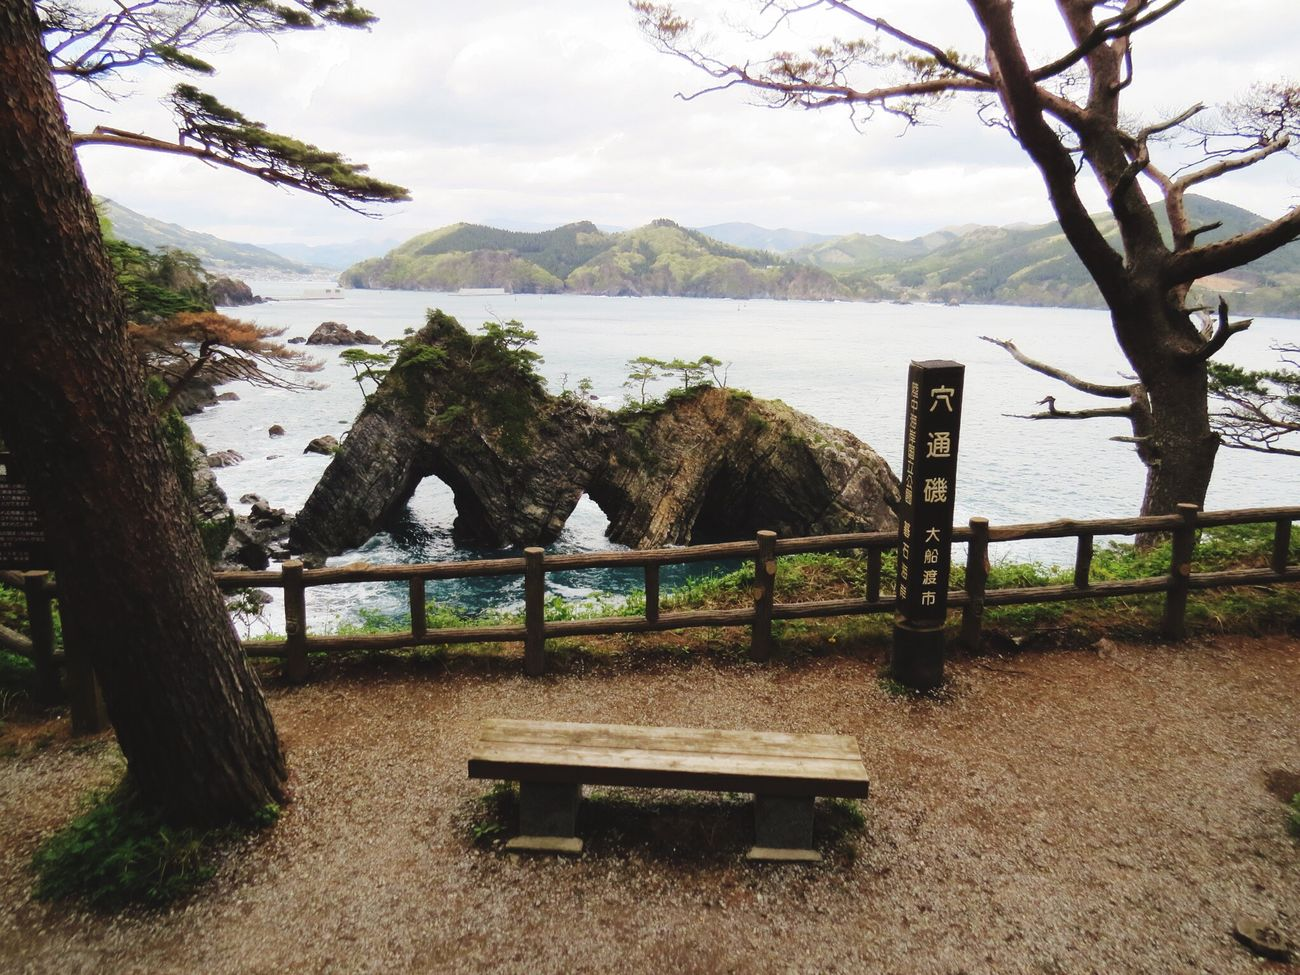 Travel Photography Travel Destinations Japan Iwate Oofunato 大船渡 碁石海岸 Goisi-Kaigsn(coast) Beauty In Nature Seaside Tranquil Scene Nature Sea Crag Rock 穴通磯(ANA TOSHI ISO)。